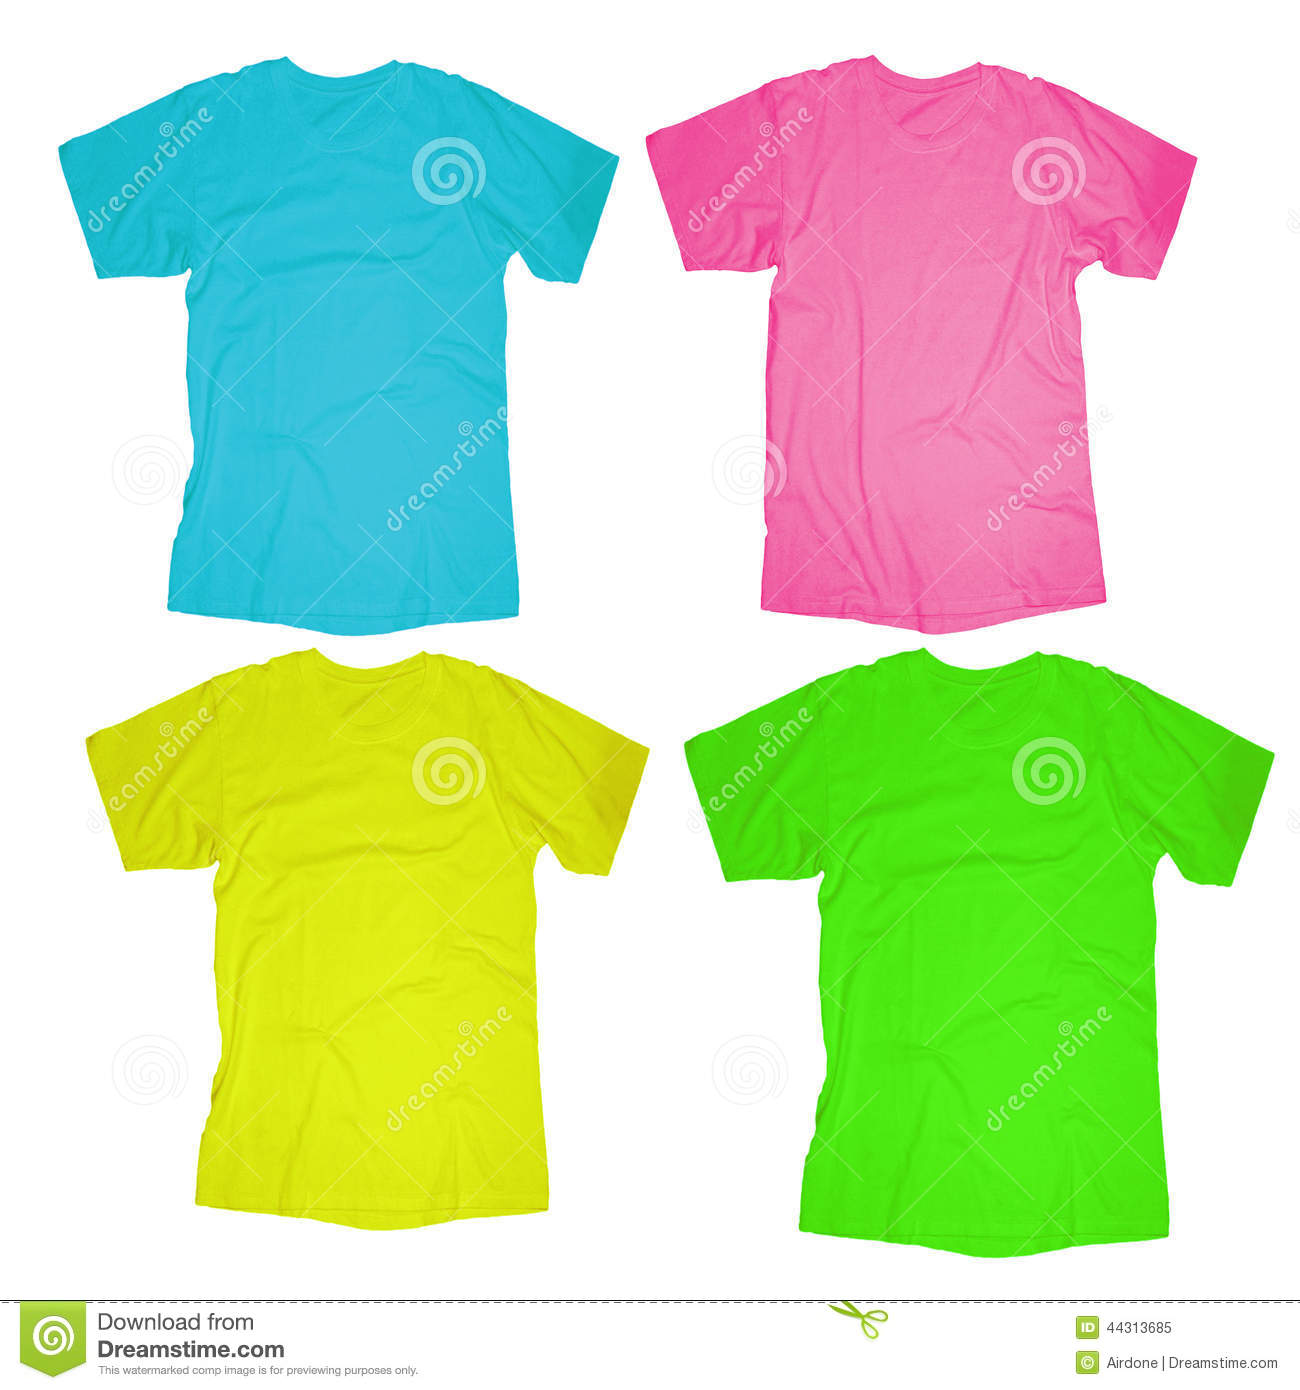 Blank t shirt template stock photo image 44313685 for Pink t shirt template